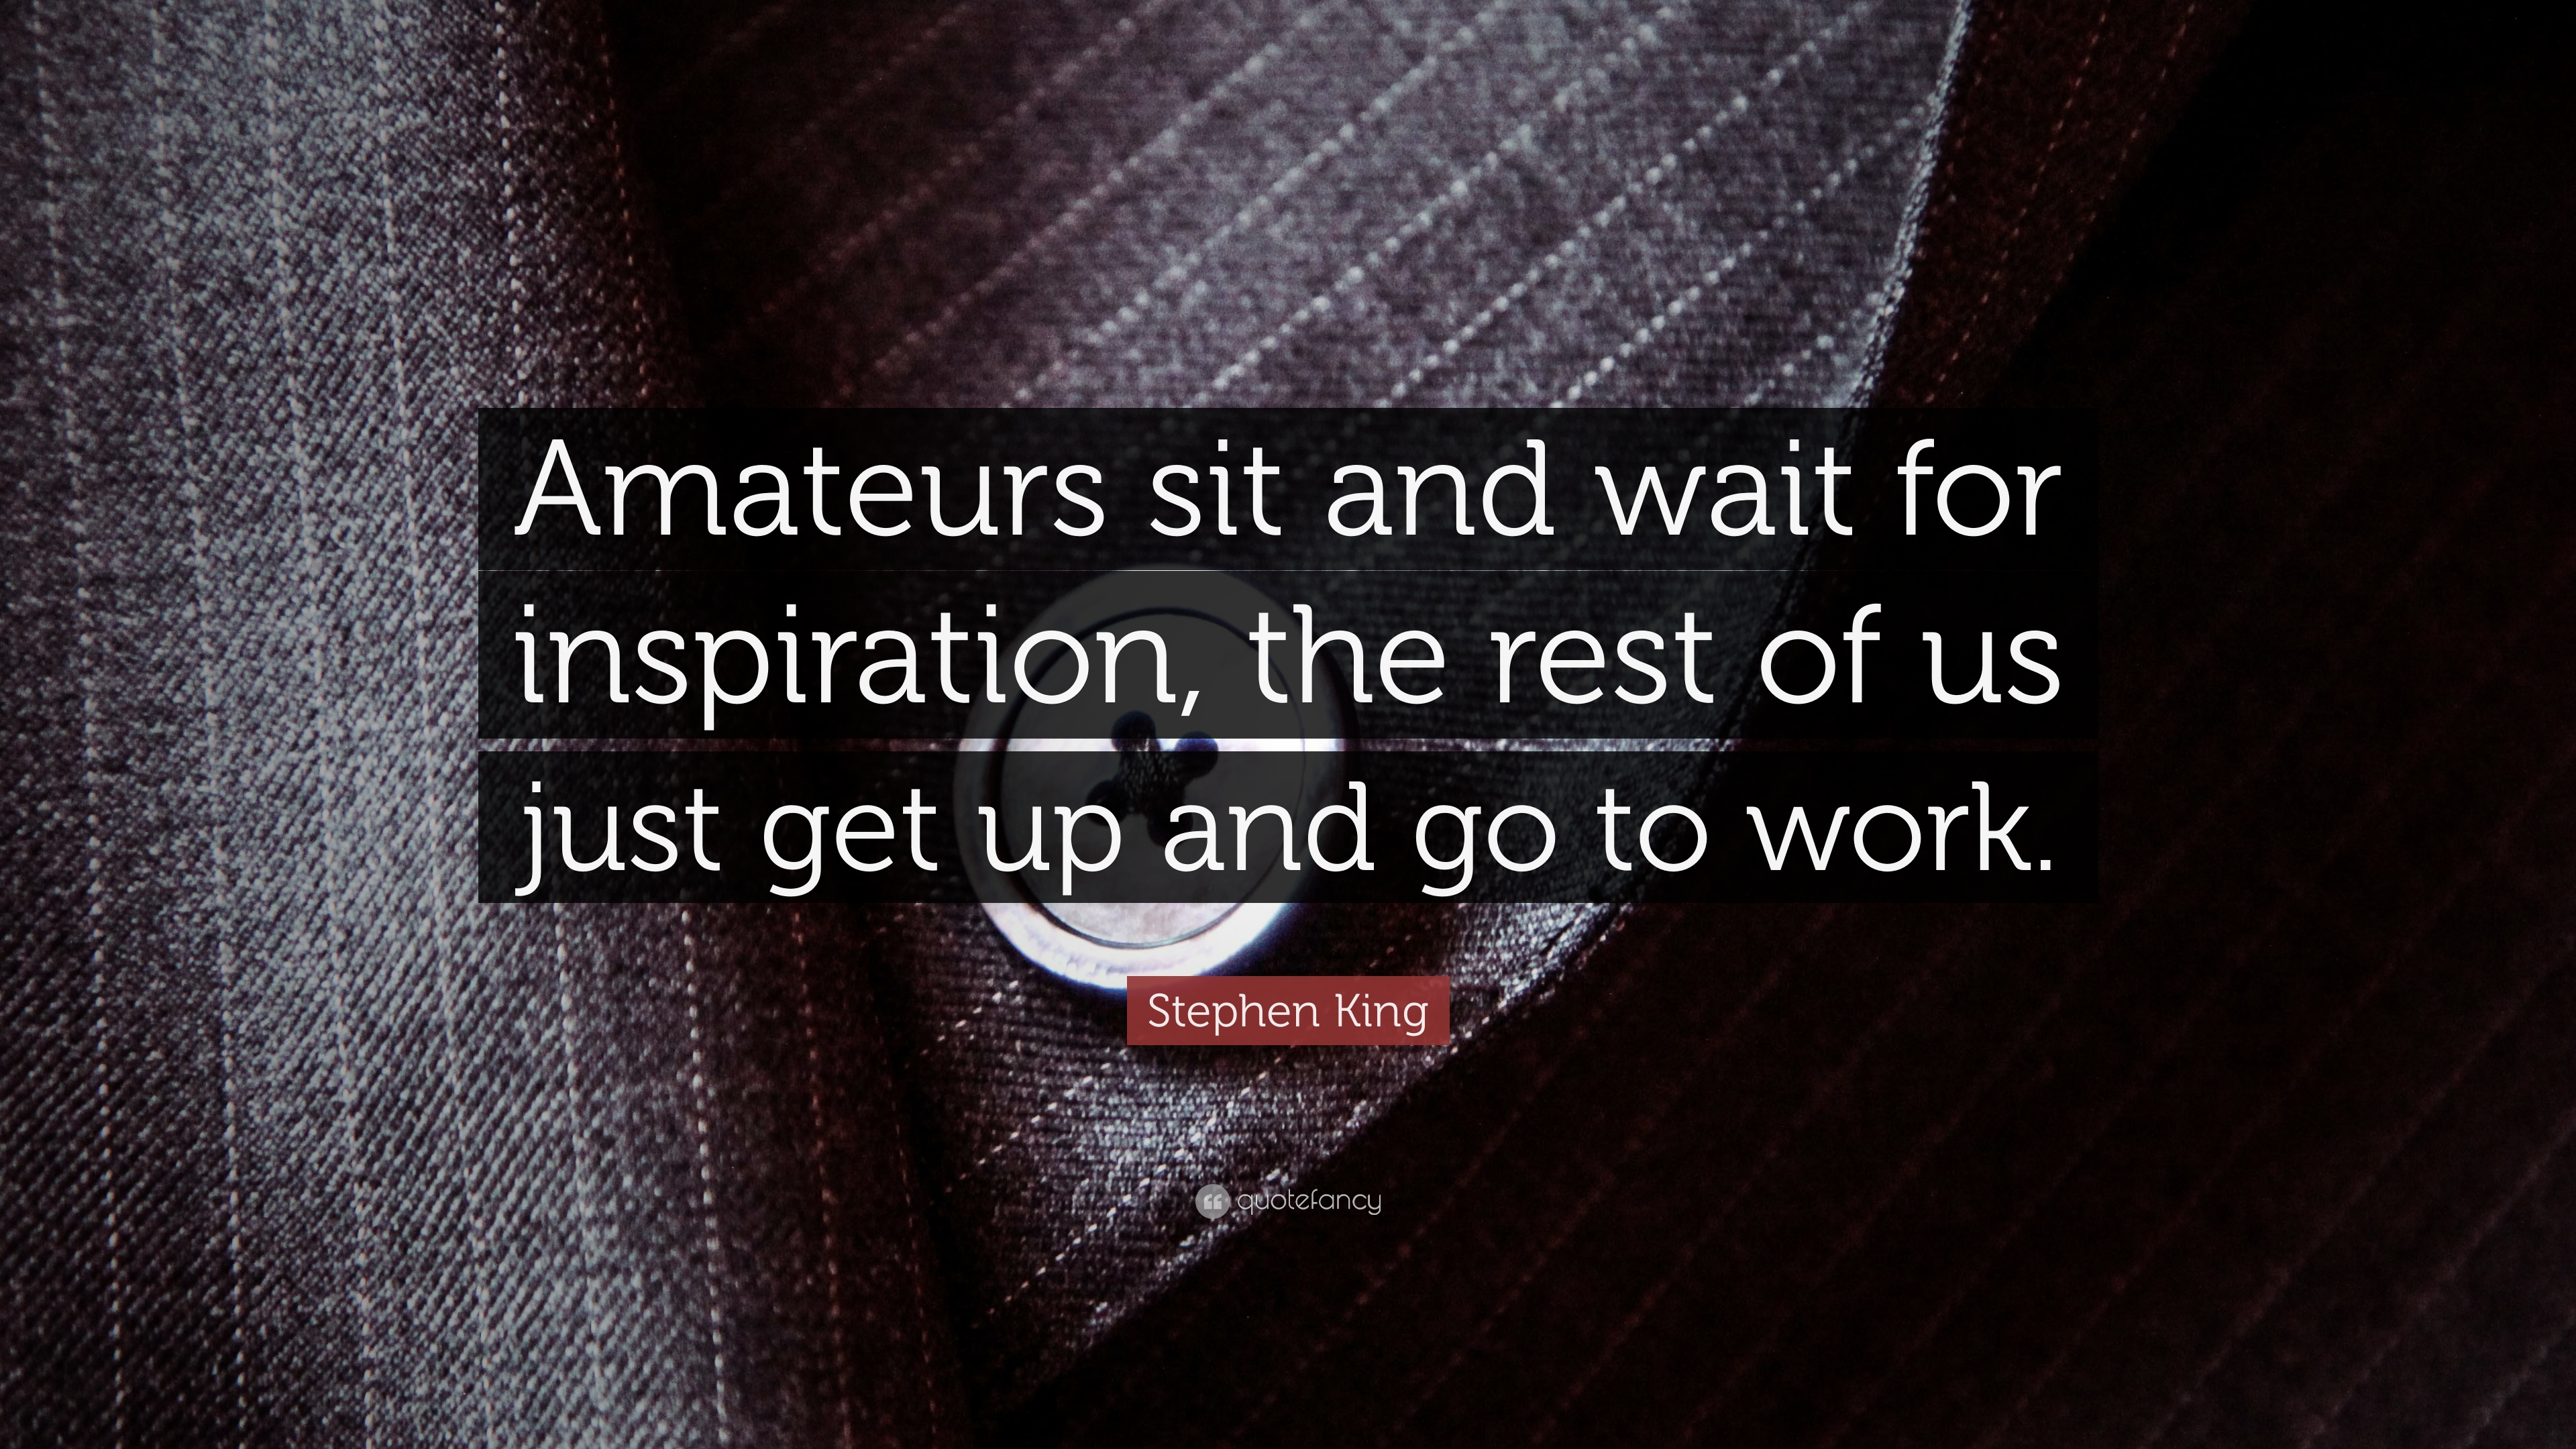 Rest In Peace Quotes Wallpaper Stephen King Quote Amateurs Sit And Wait For Inspiration